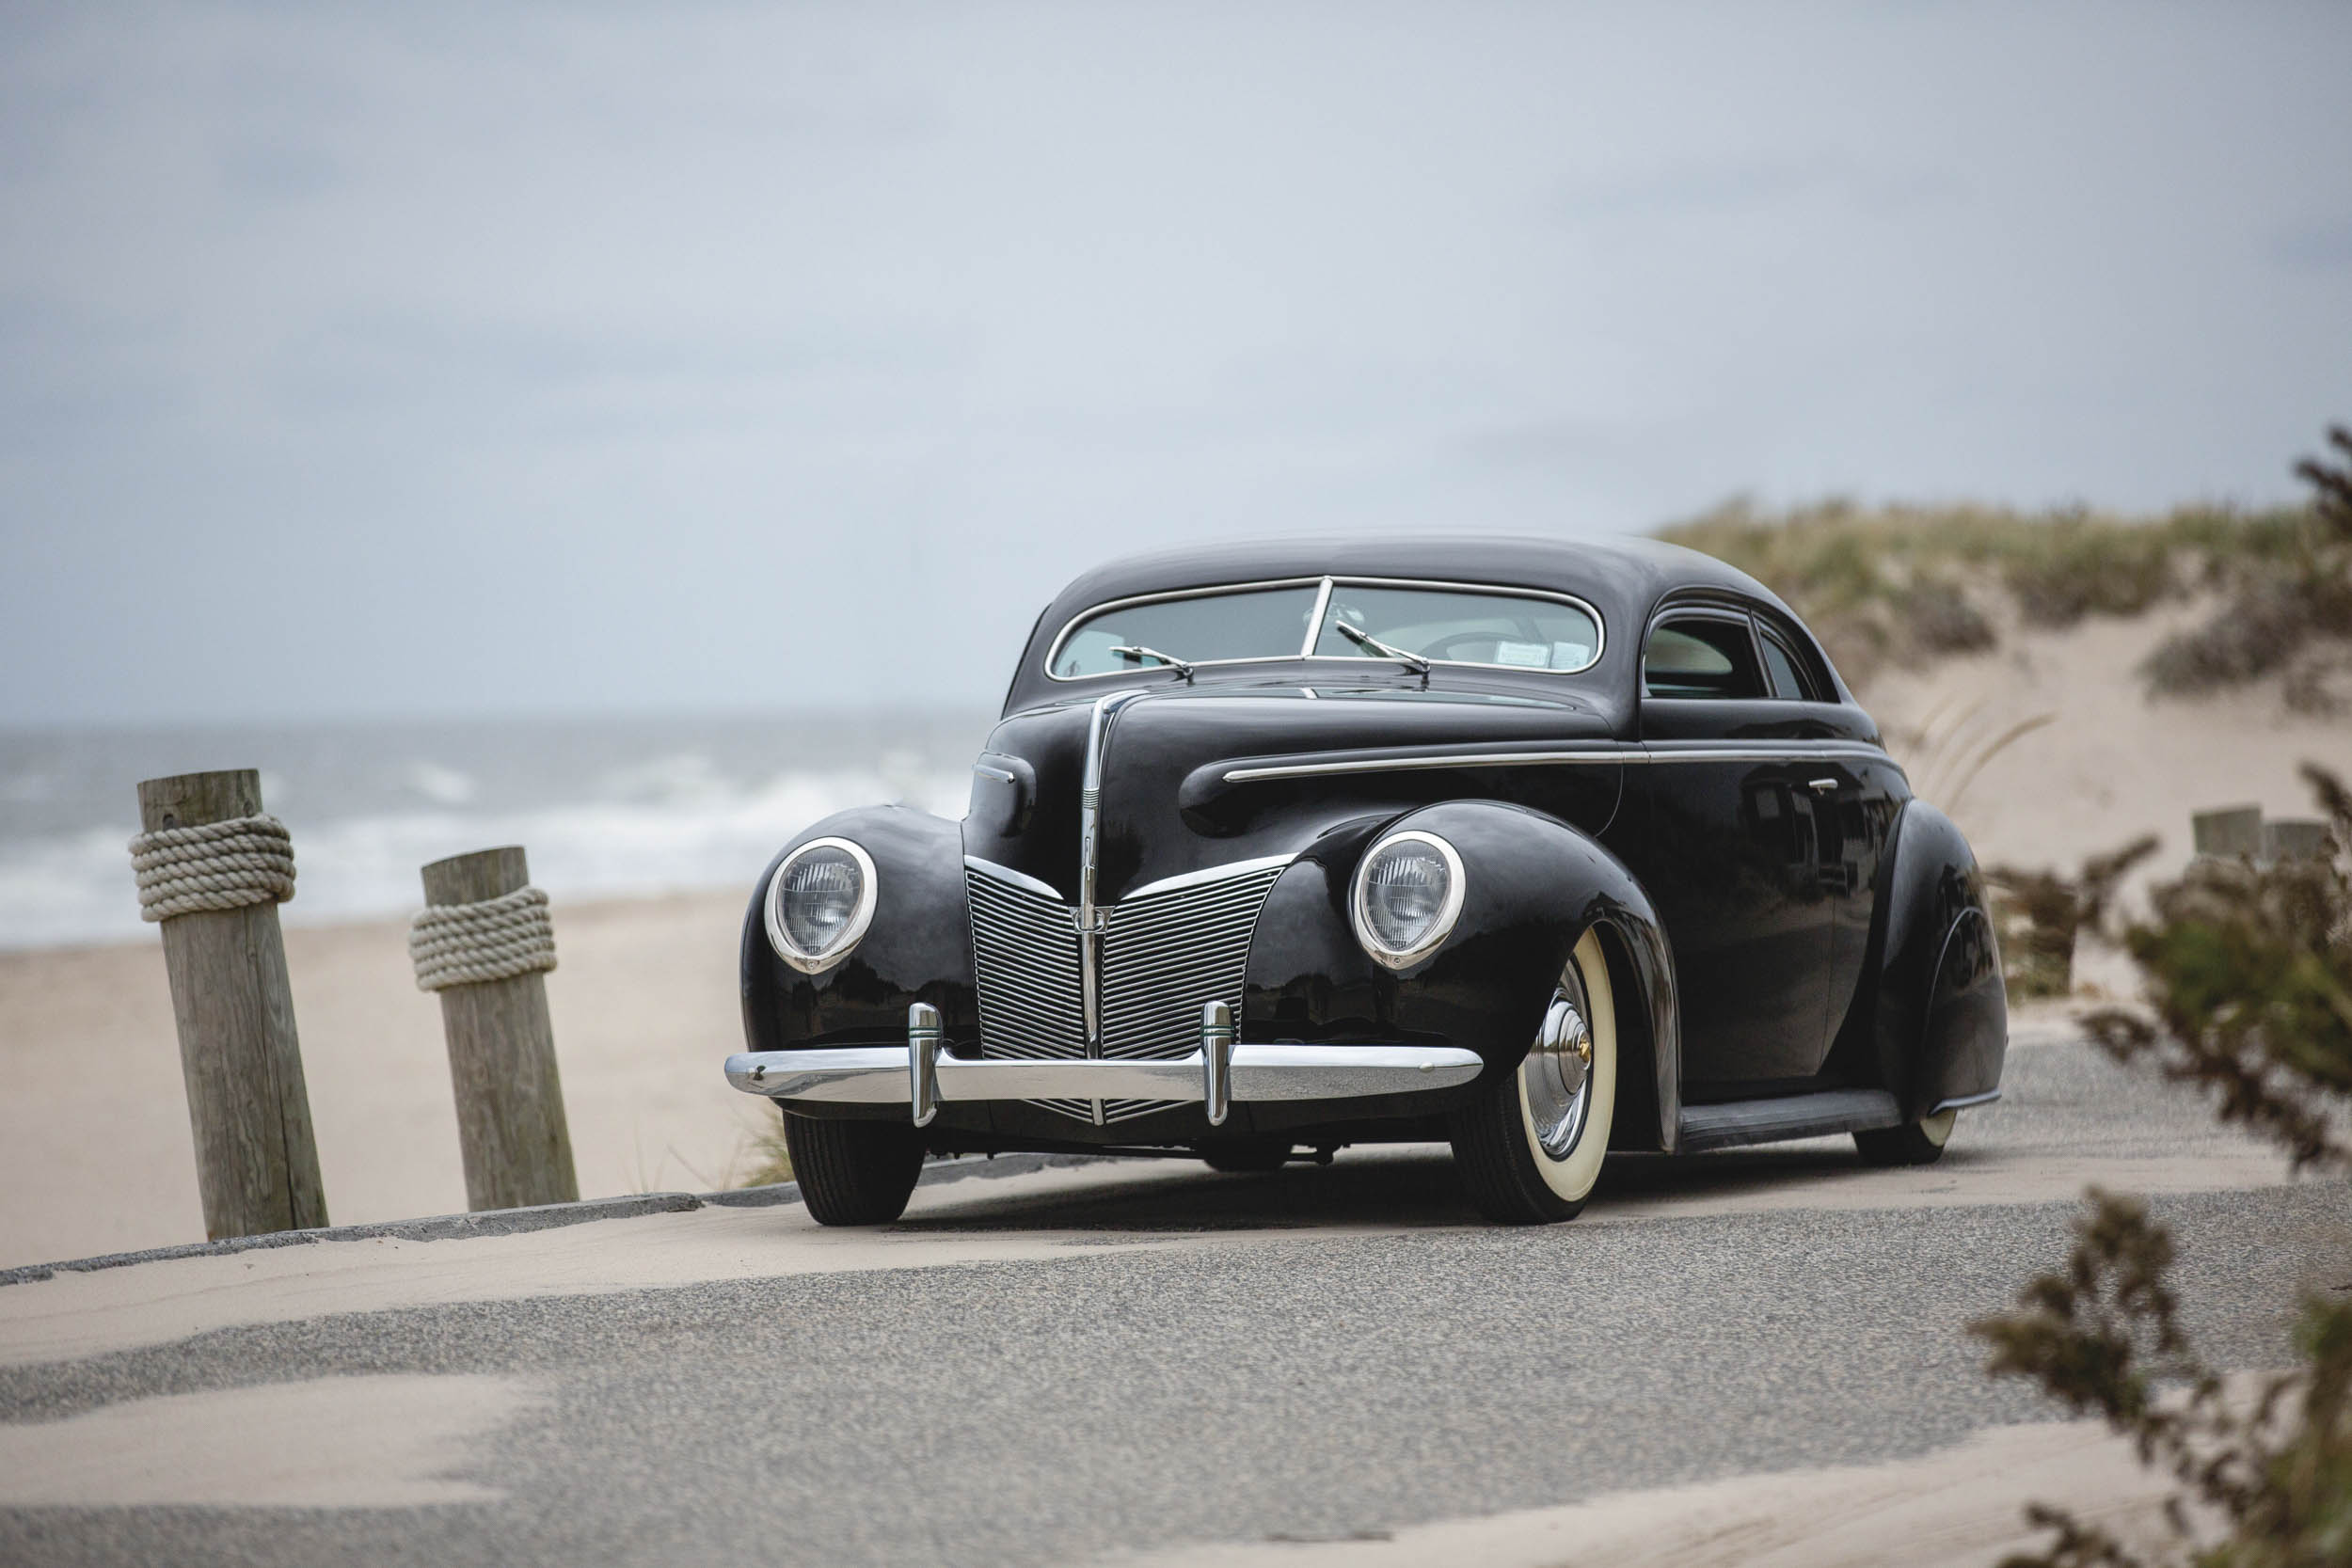 1940 Mercury Coupe Custom by Rudy Rodriguez front 3/4